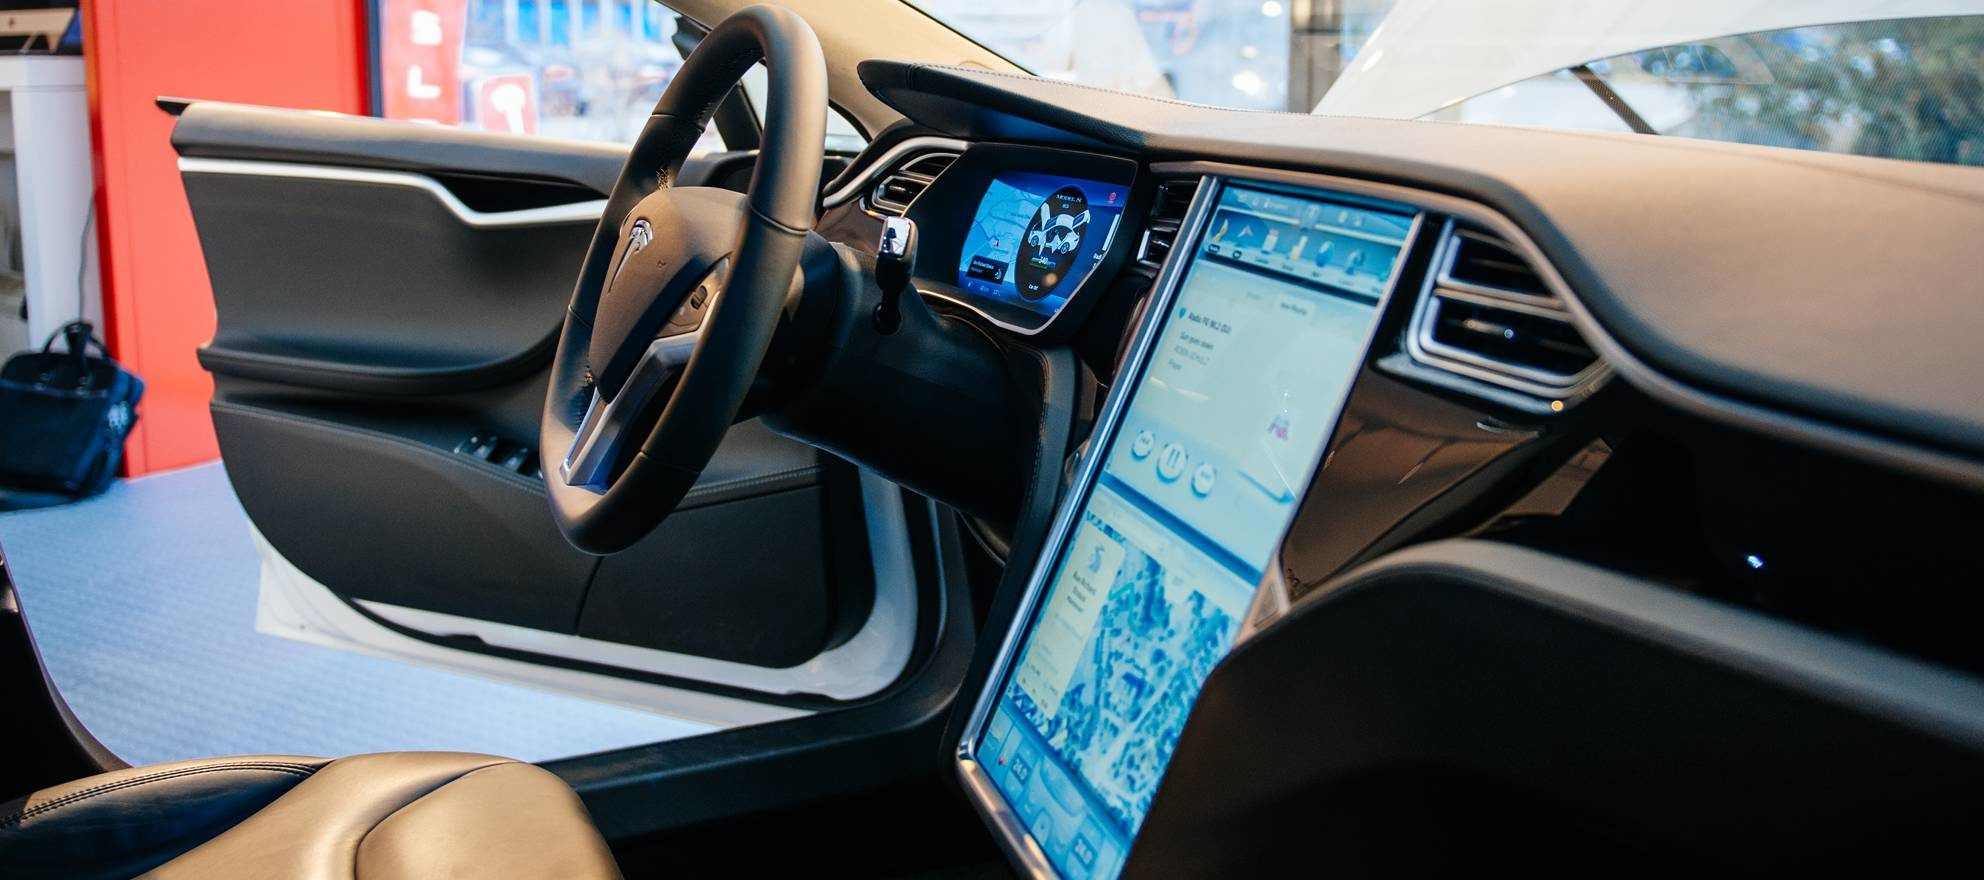 How connected cars will change real estate